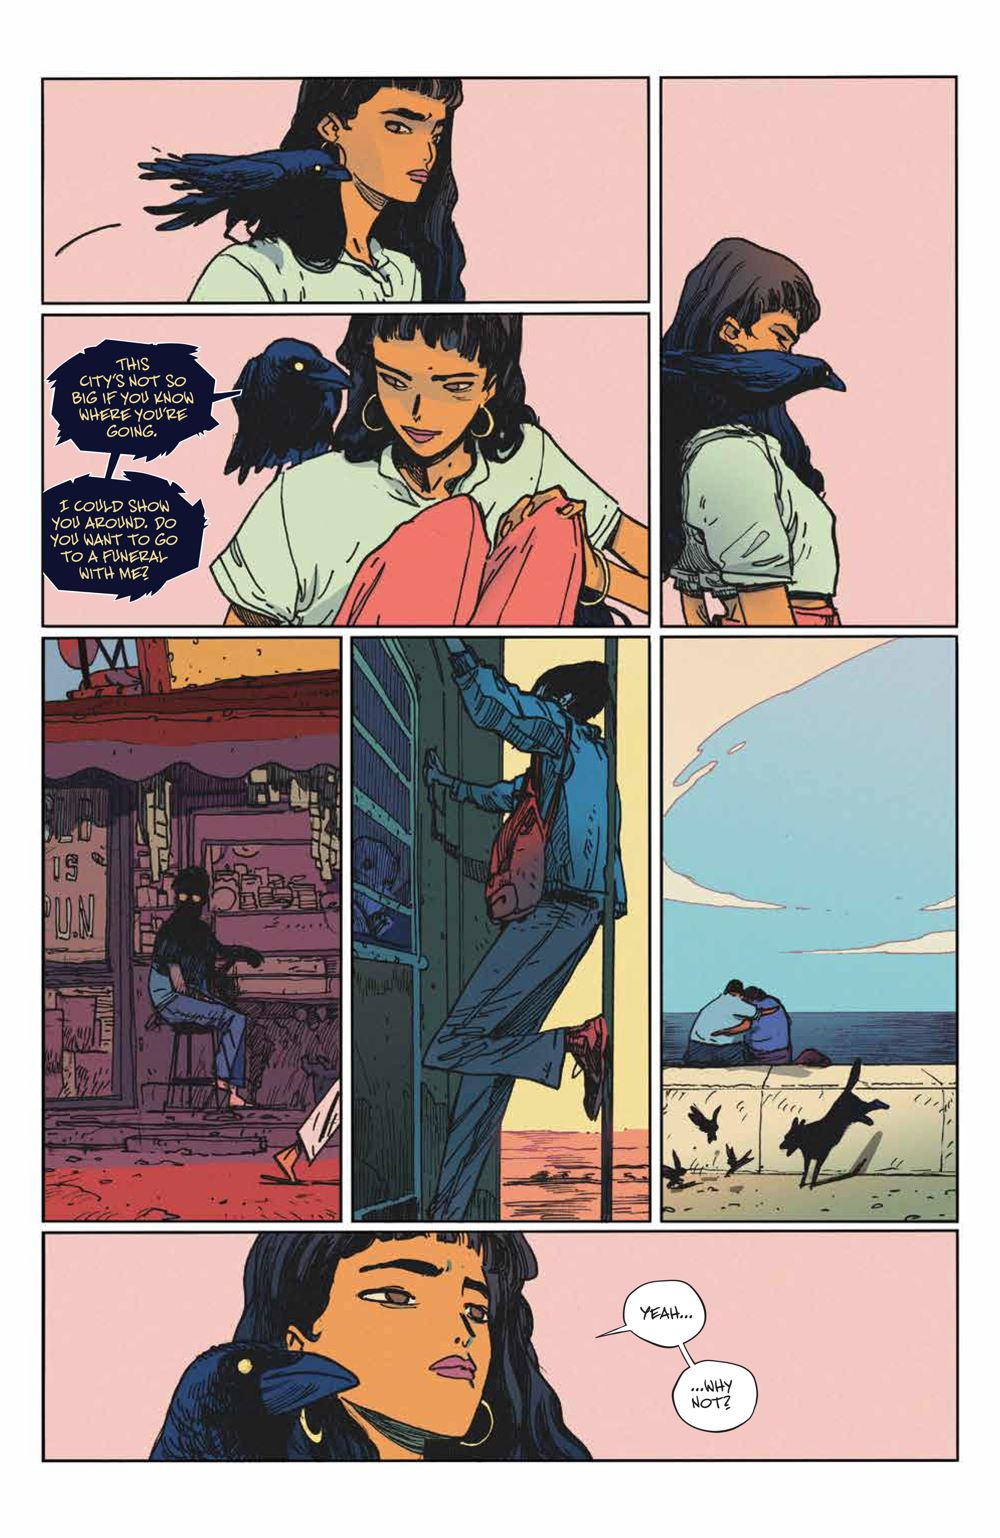 ManyDeathsLailaStarr_002_PRESS_6 ComicList Previews: THE MANY DEATHS OF LAILA STARR #2 (OF 5)